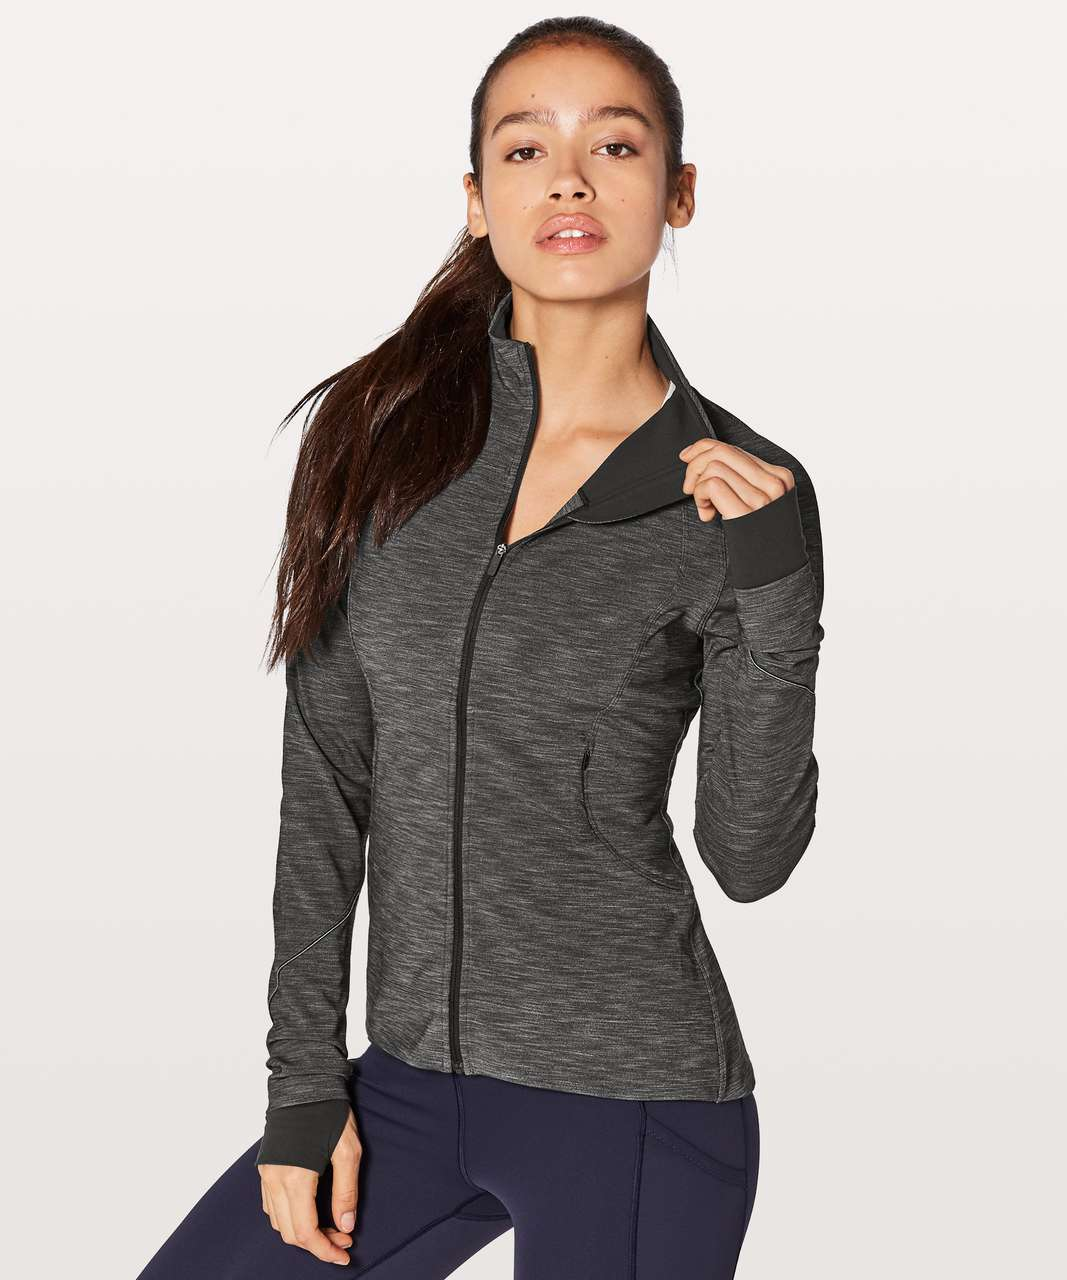 Lululemon Gait Keeper Jacket - Heathered Black